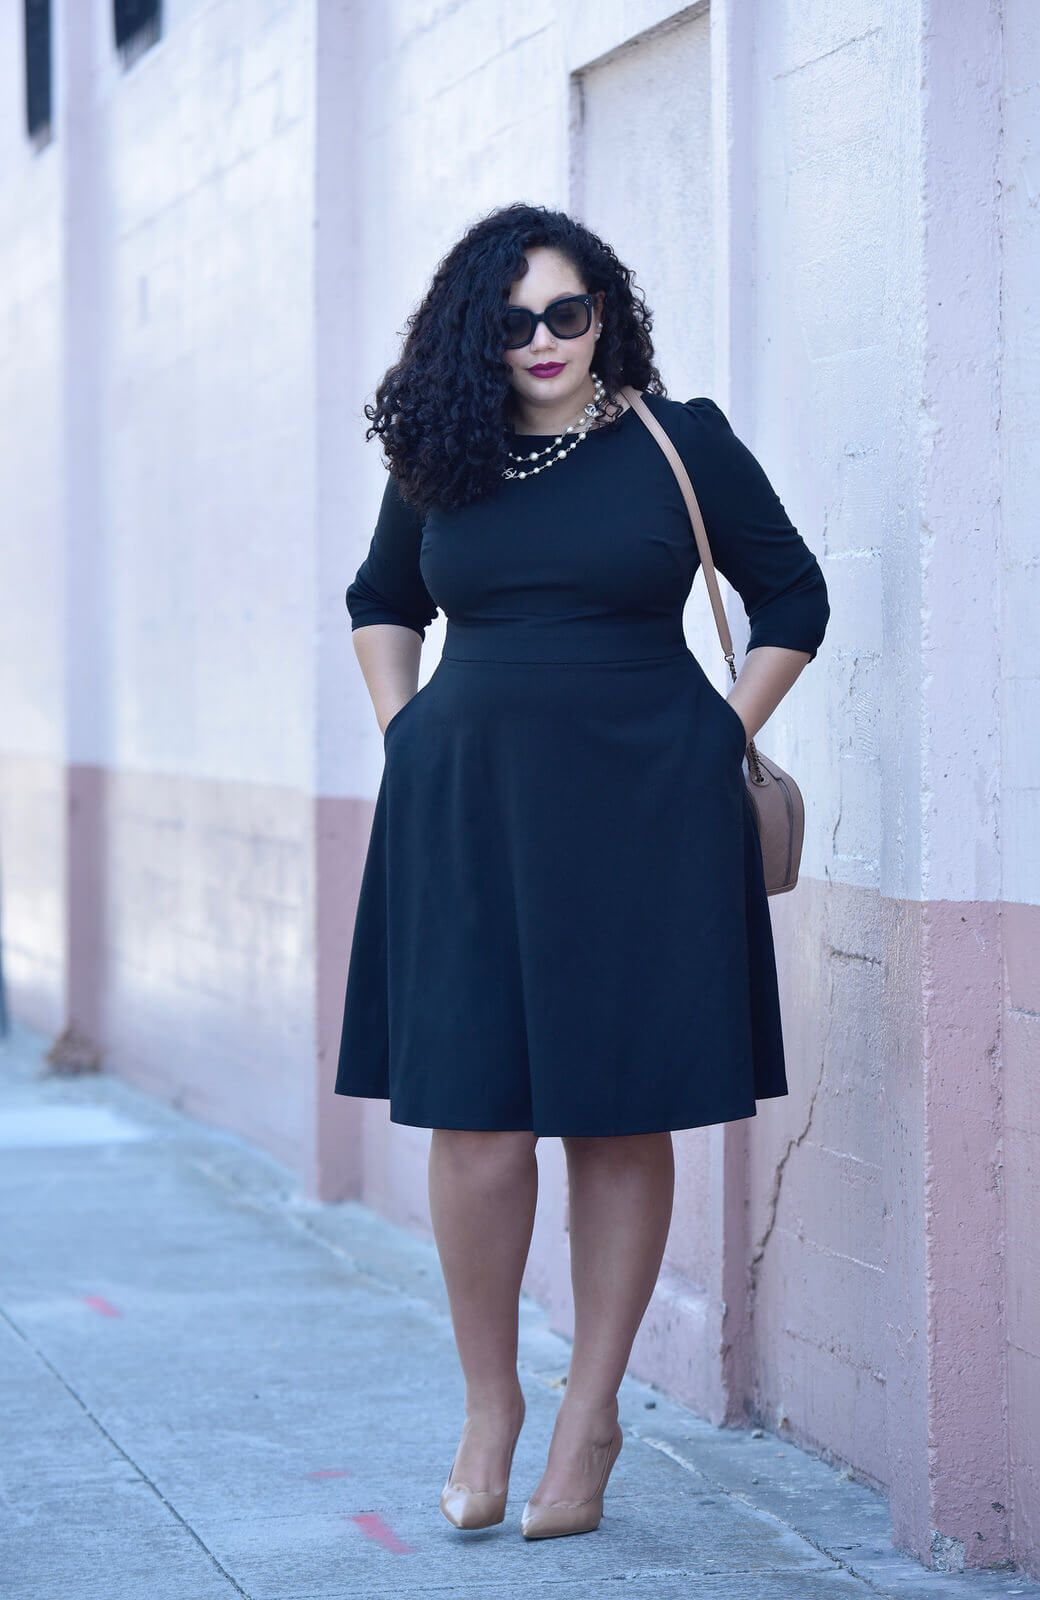 The Little Black Dress of my Dreams | Girl With Curves